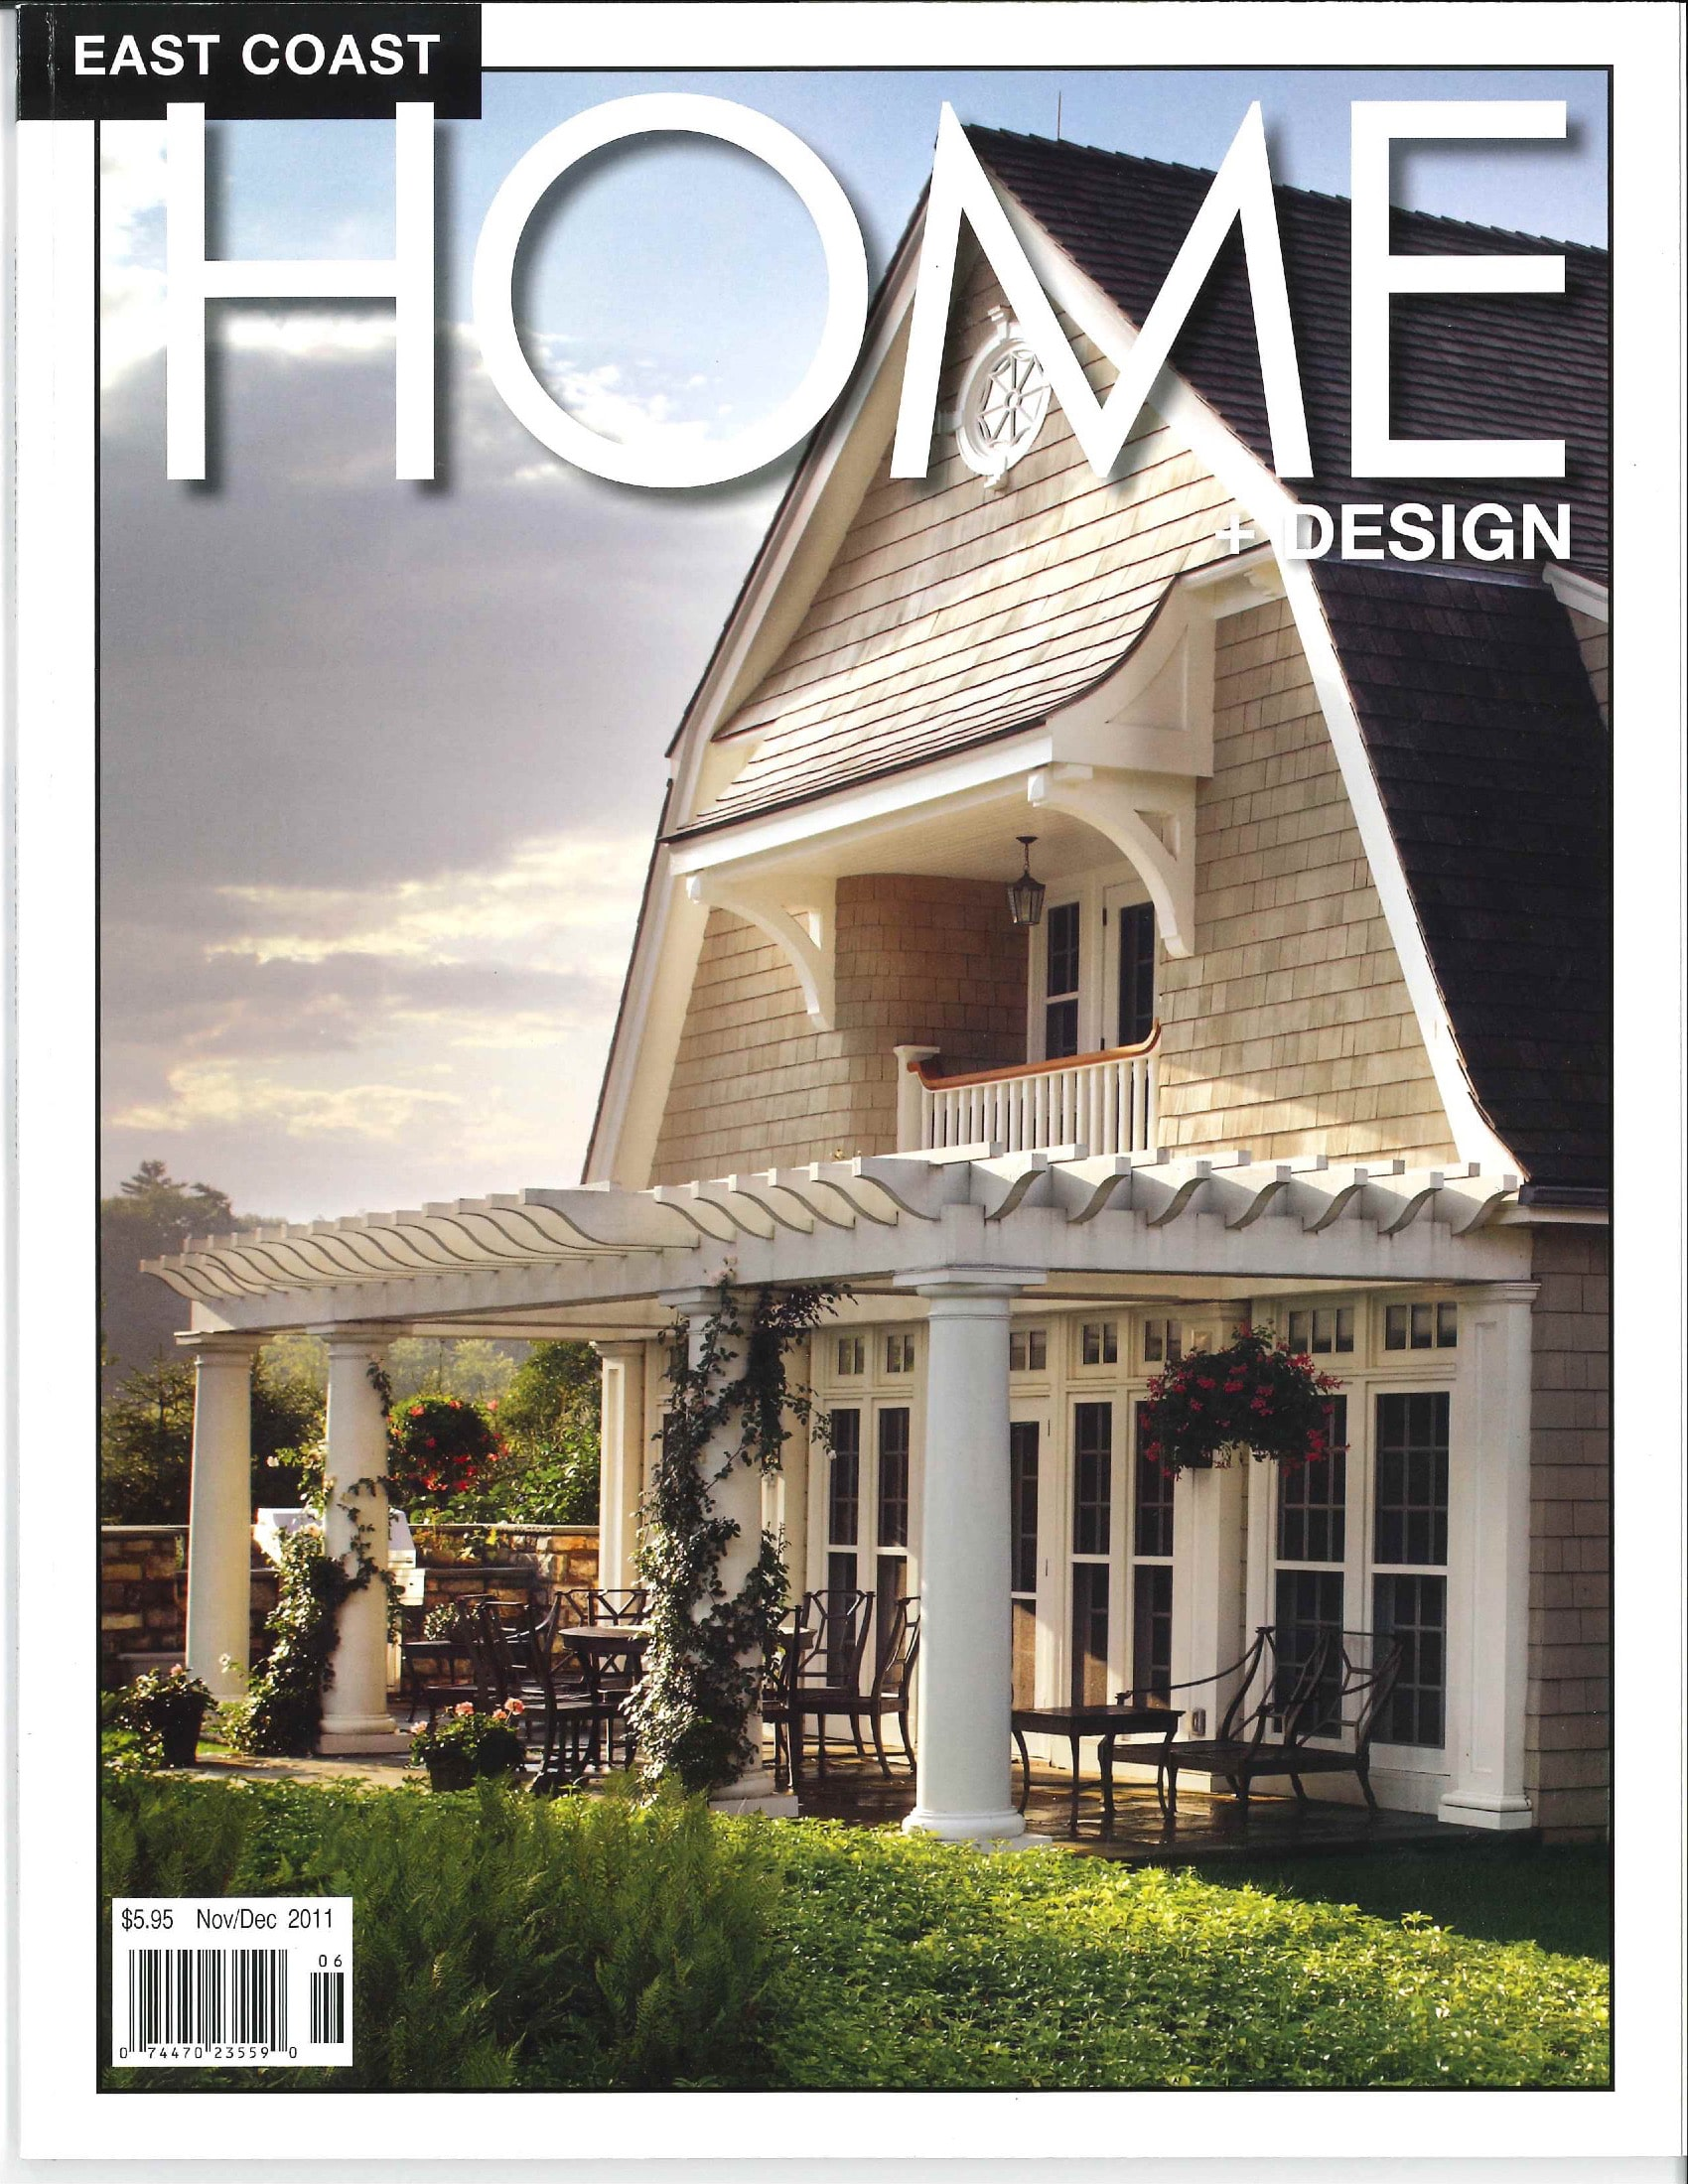 East Coast Home + Design - November 2011